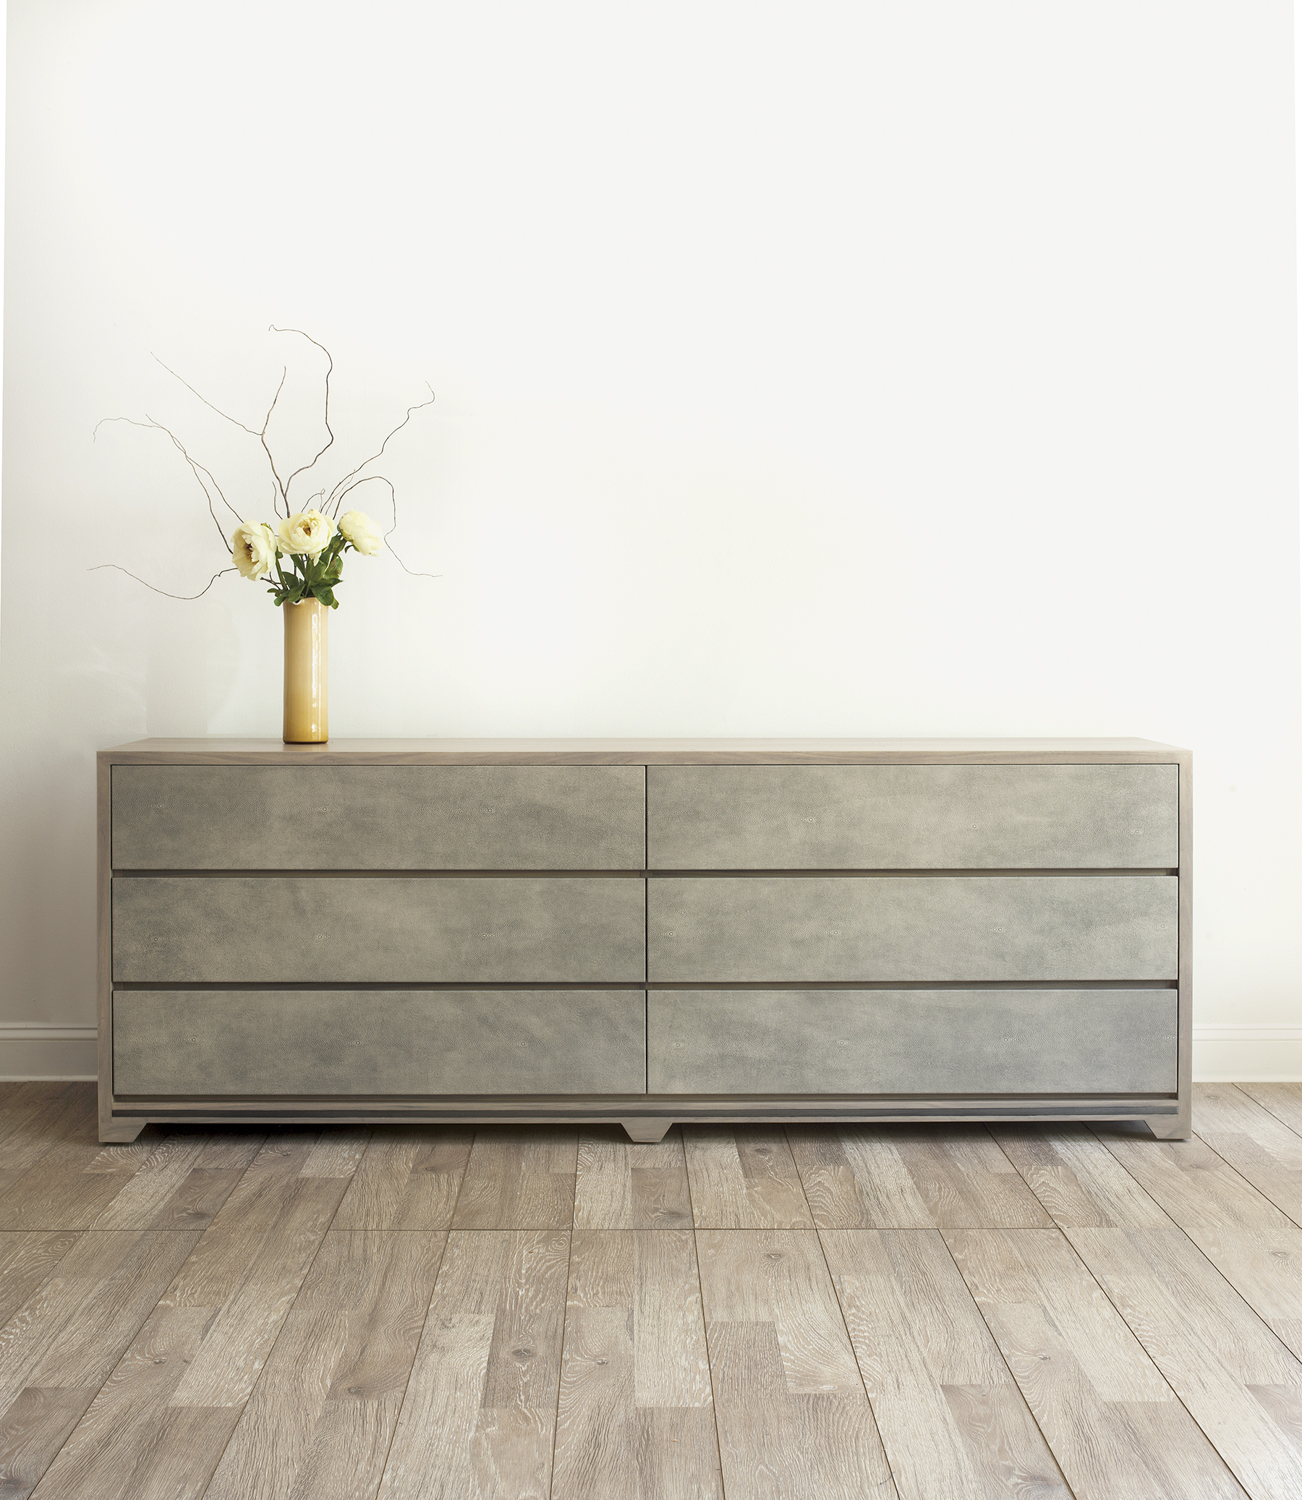 Lifestyle image of dresser on wood floor